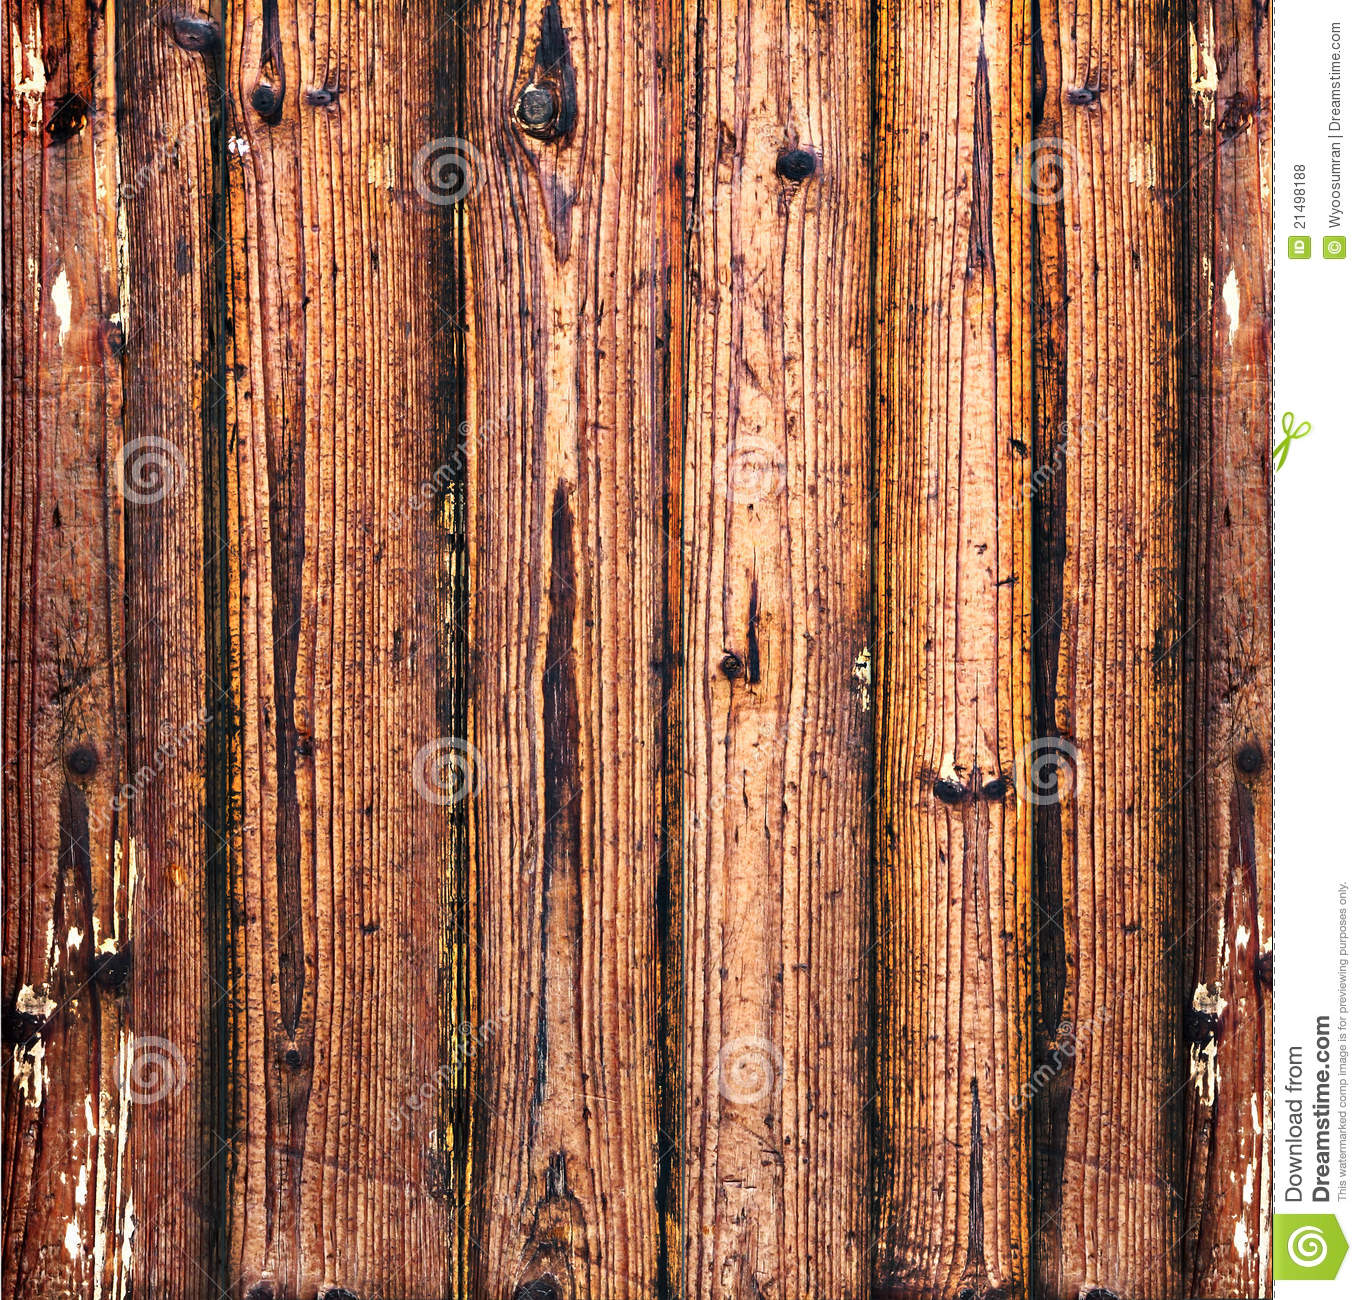 old wood panels royalty free stock photos image 21498188